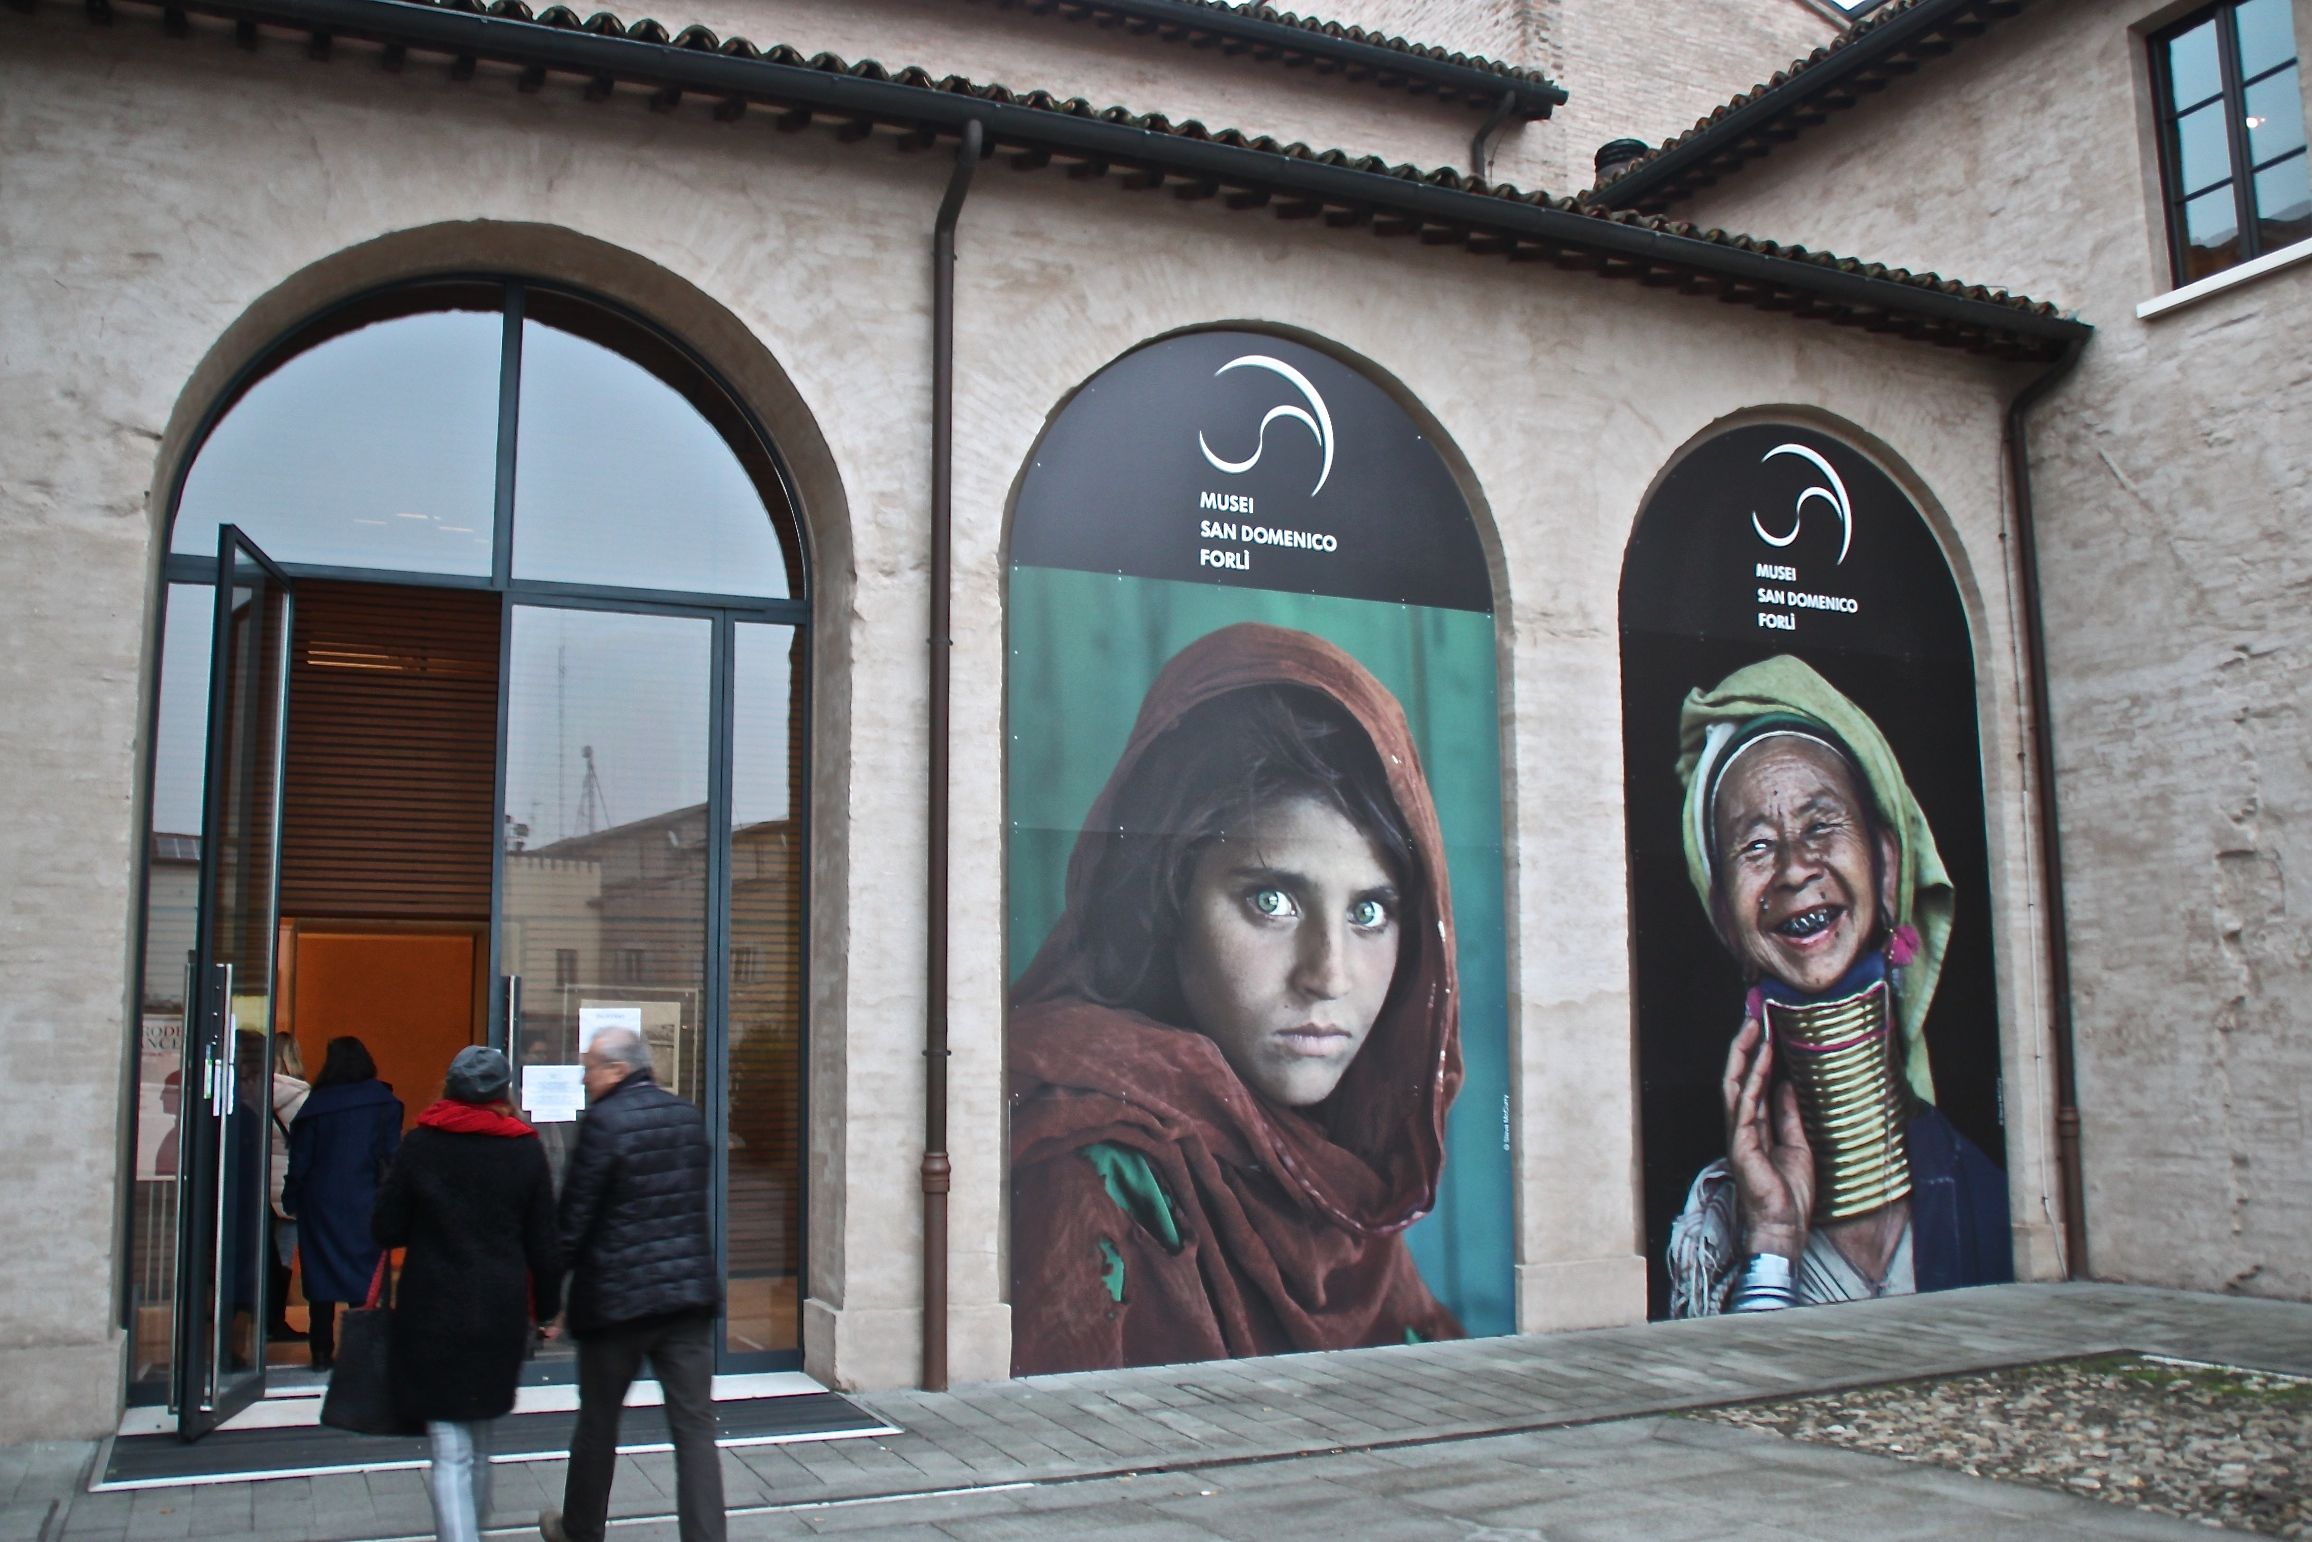 Top 6 reasons to visit forl emilia romagna for Steve mccurry icons